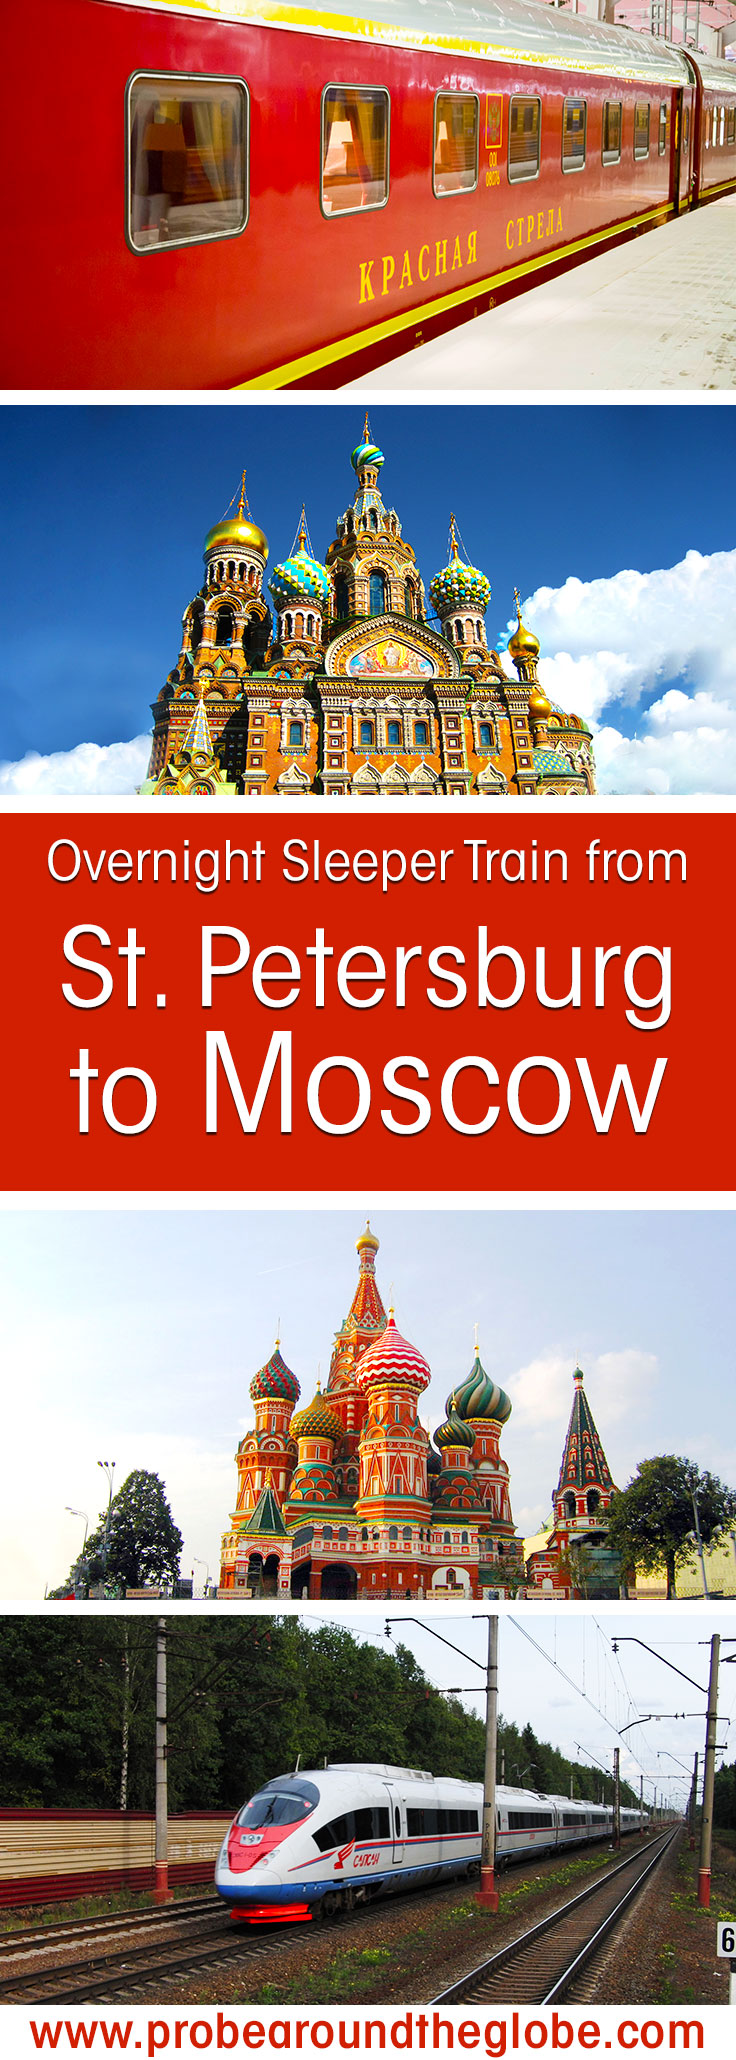 If you plan to visit Russia and see the biggest cities, you might want to consider the train from St. Petersburg to Moscow. Although flying is an option, the train is fast, comfortable and brings you to the heart of the city. Read here what it is like to travel on the overnight sleeper trains St. Petersburg to Moscow.